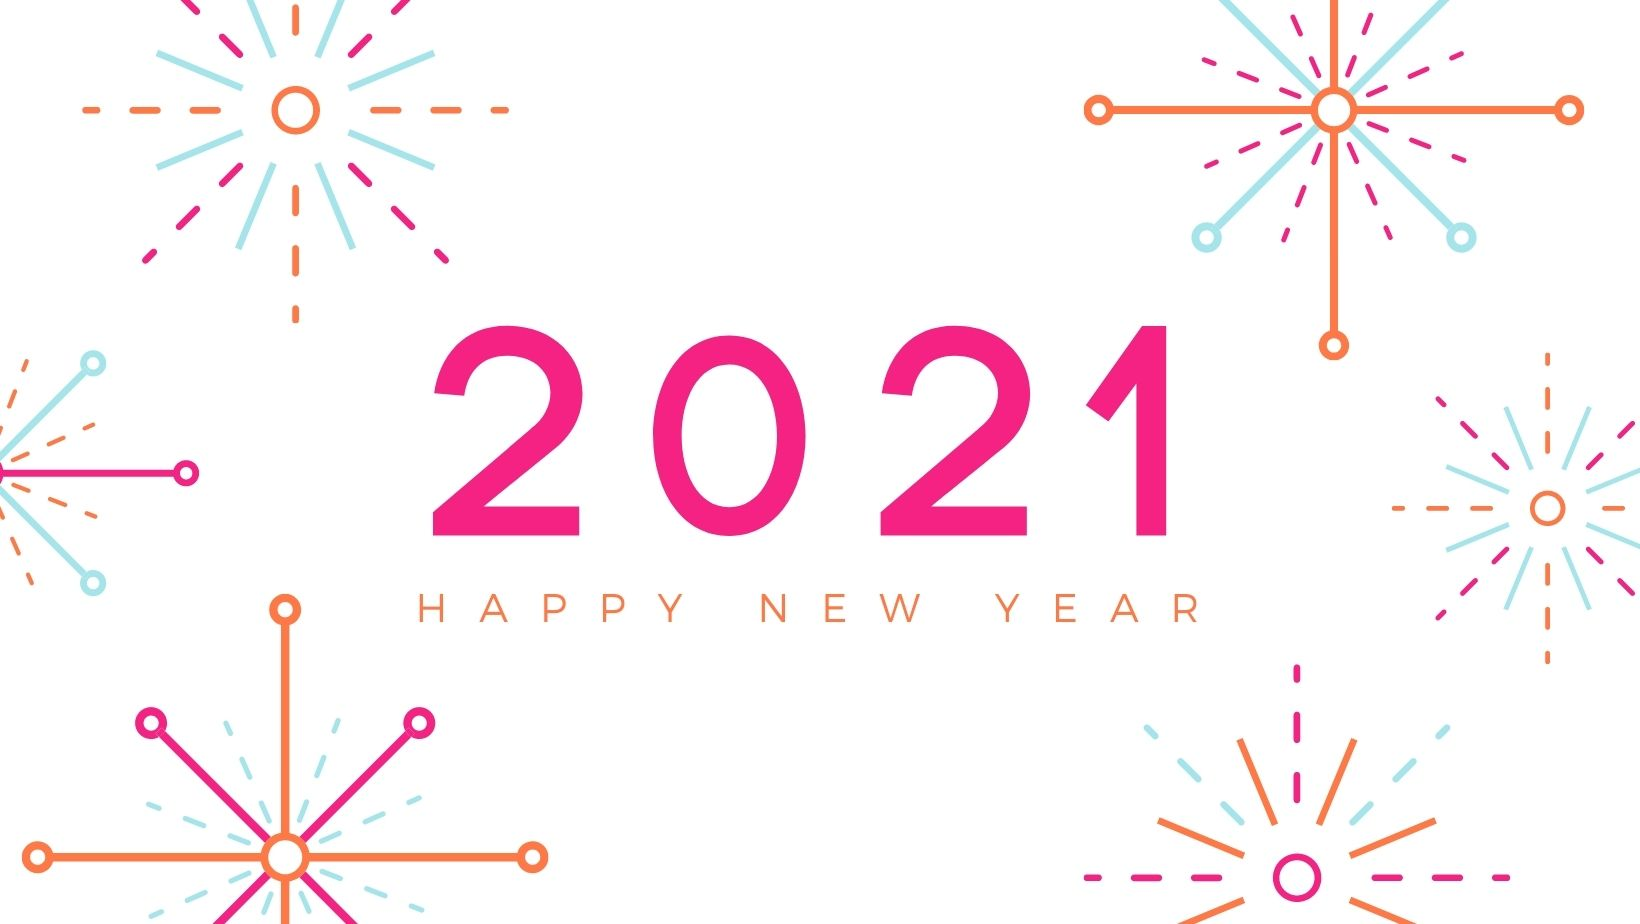 Graphic displaying 2021 - Happy New Year